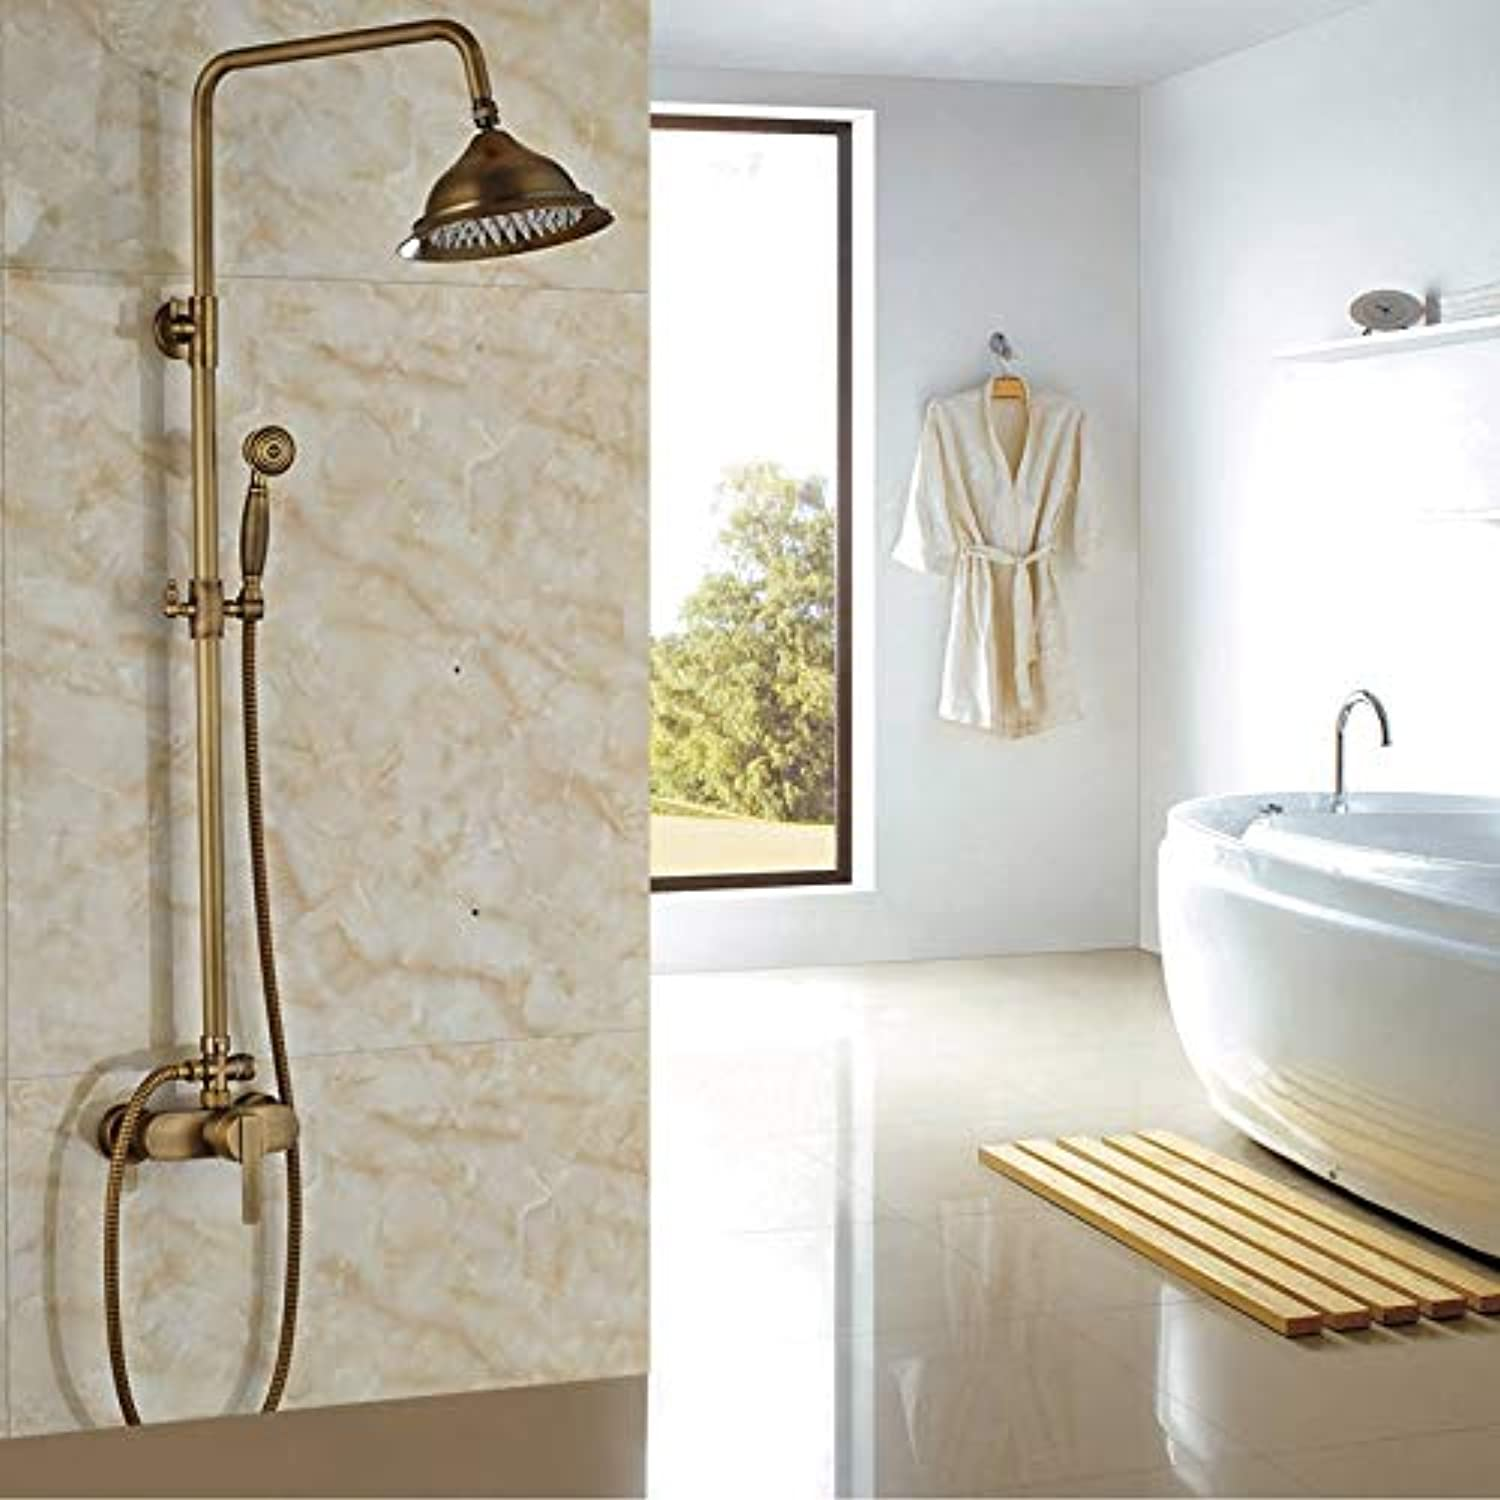 New Arrival Antique Shower Set Faucet Mixer Tap+Single Handle Shower System Wall Mounted,Chocolate